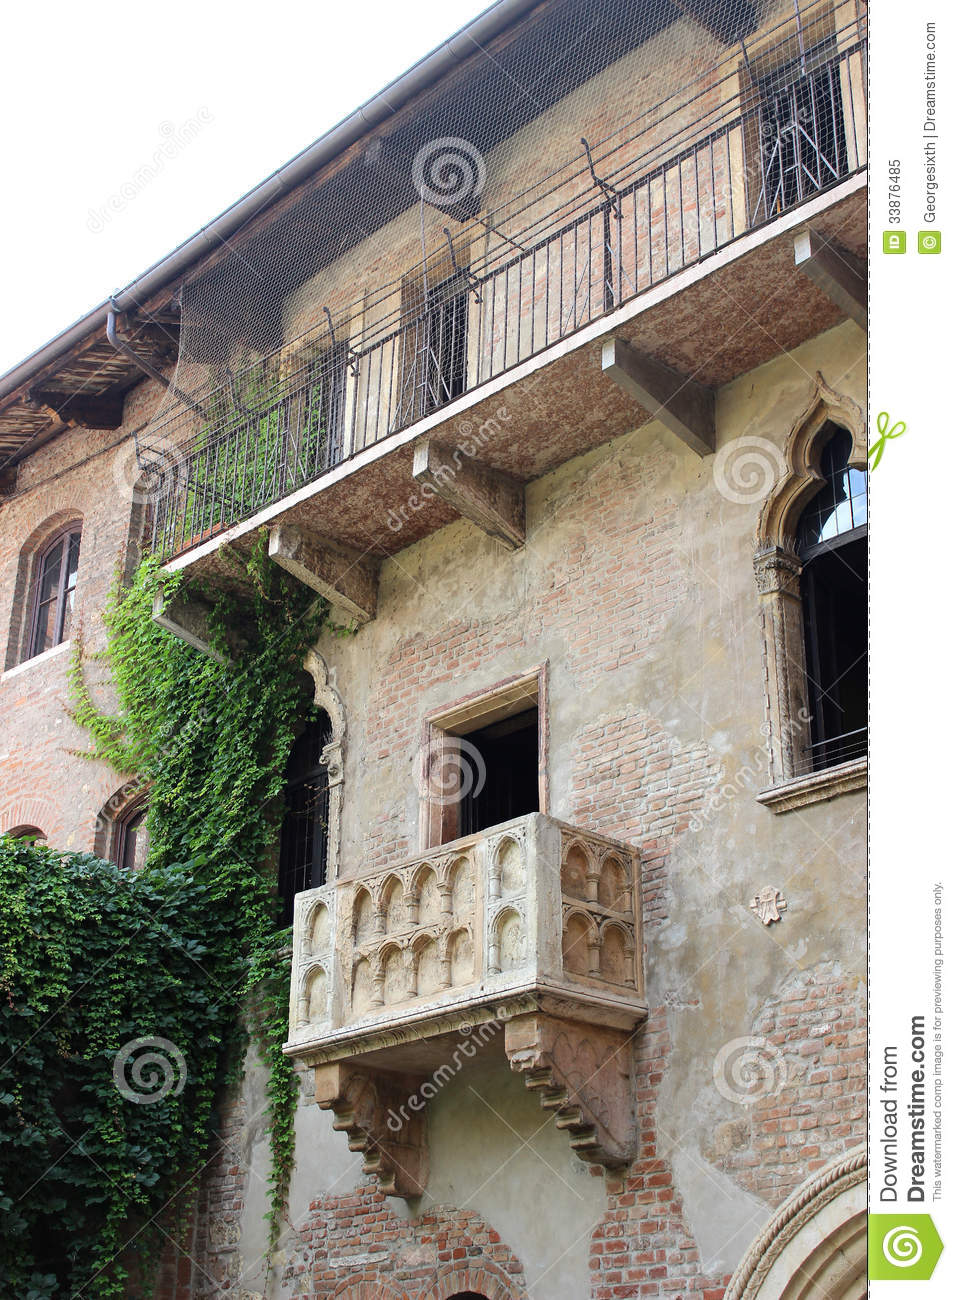 Juliets Balcony In Verona Italy Stock Image Image Of